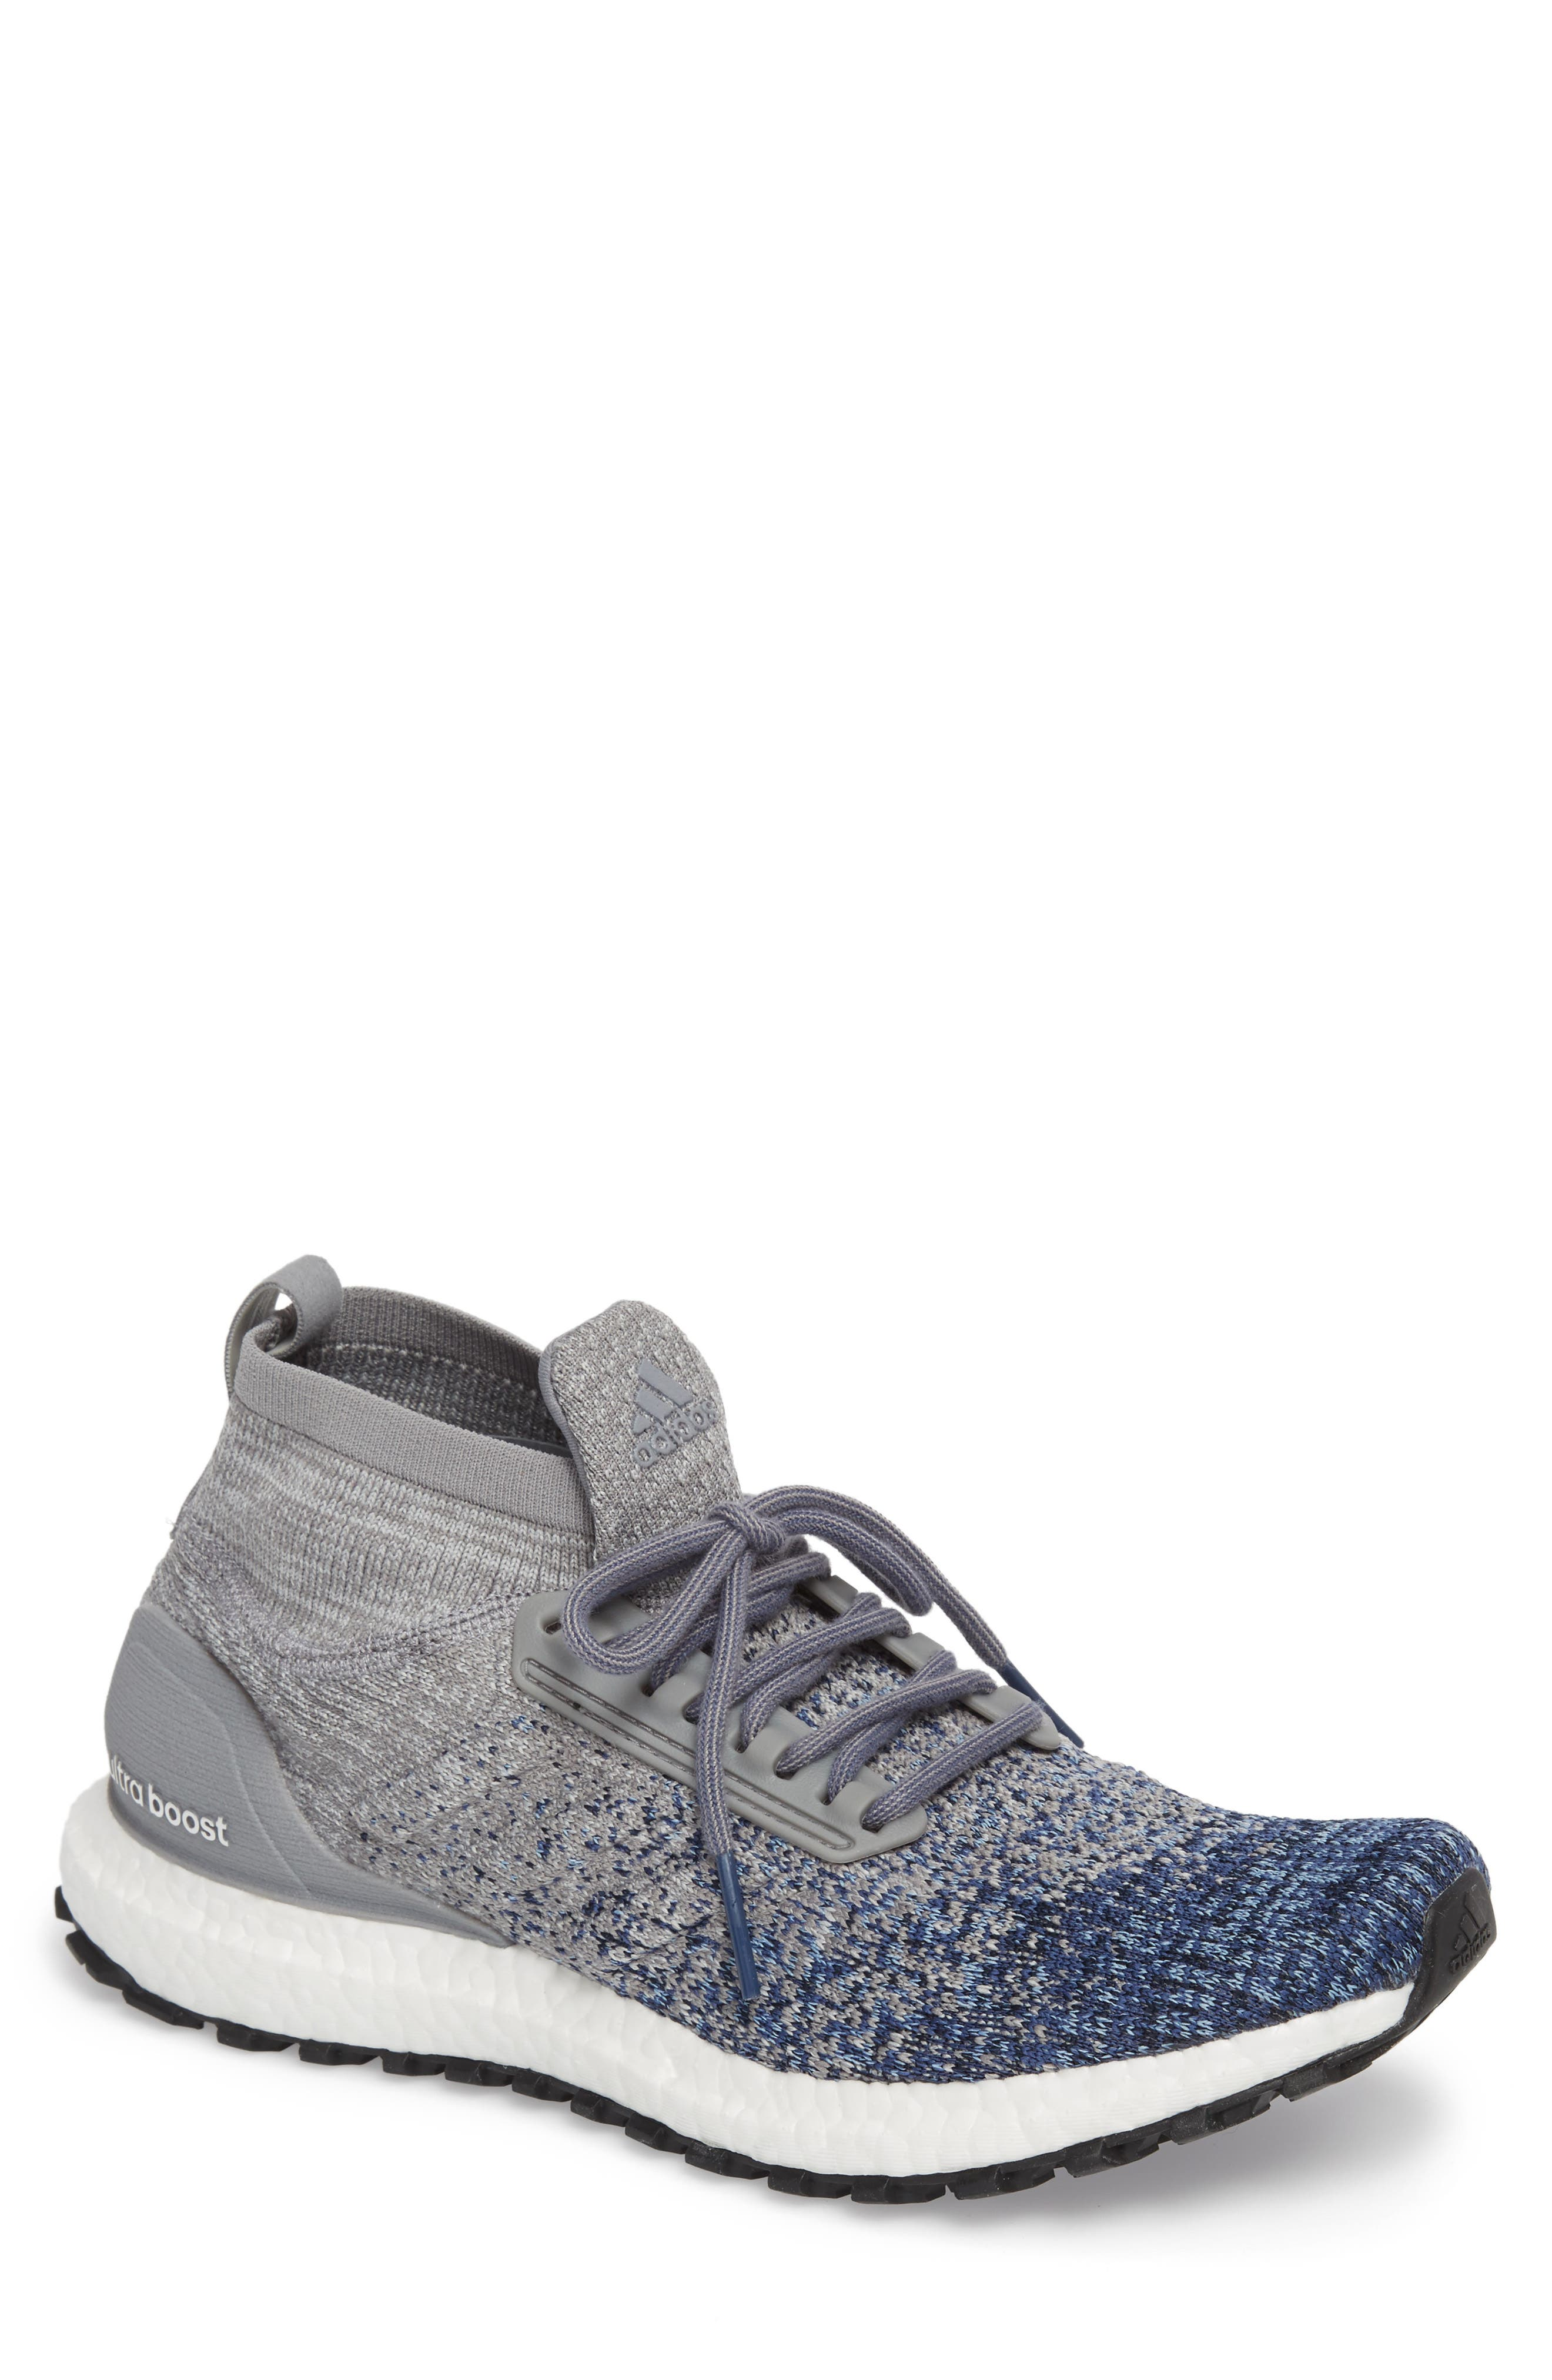 UltraBoost All Terrain Water Resistant Running Shoe,                         Main,                         color, Grey/ Grey/ Noble Indigo